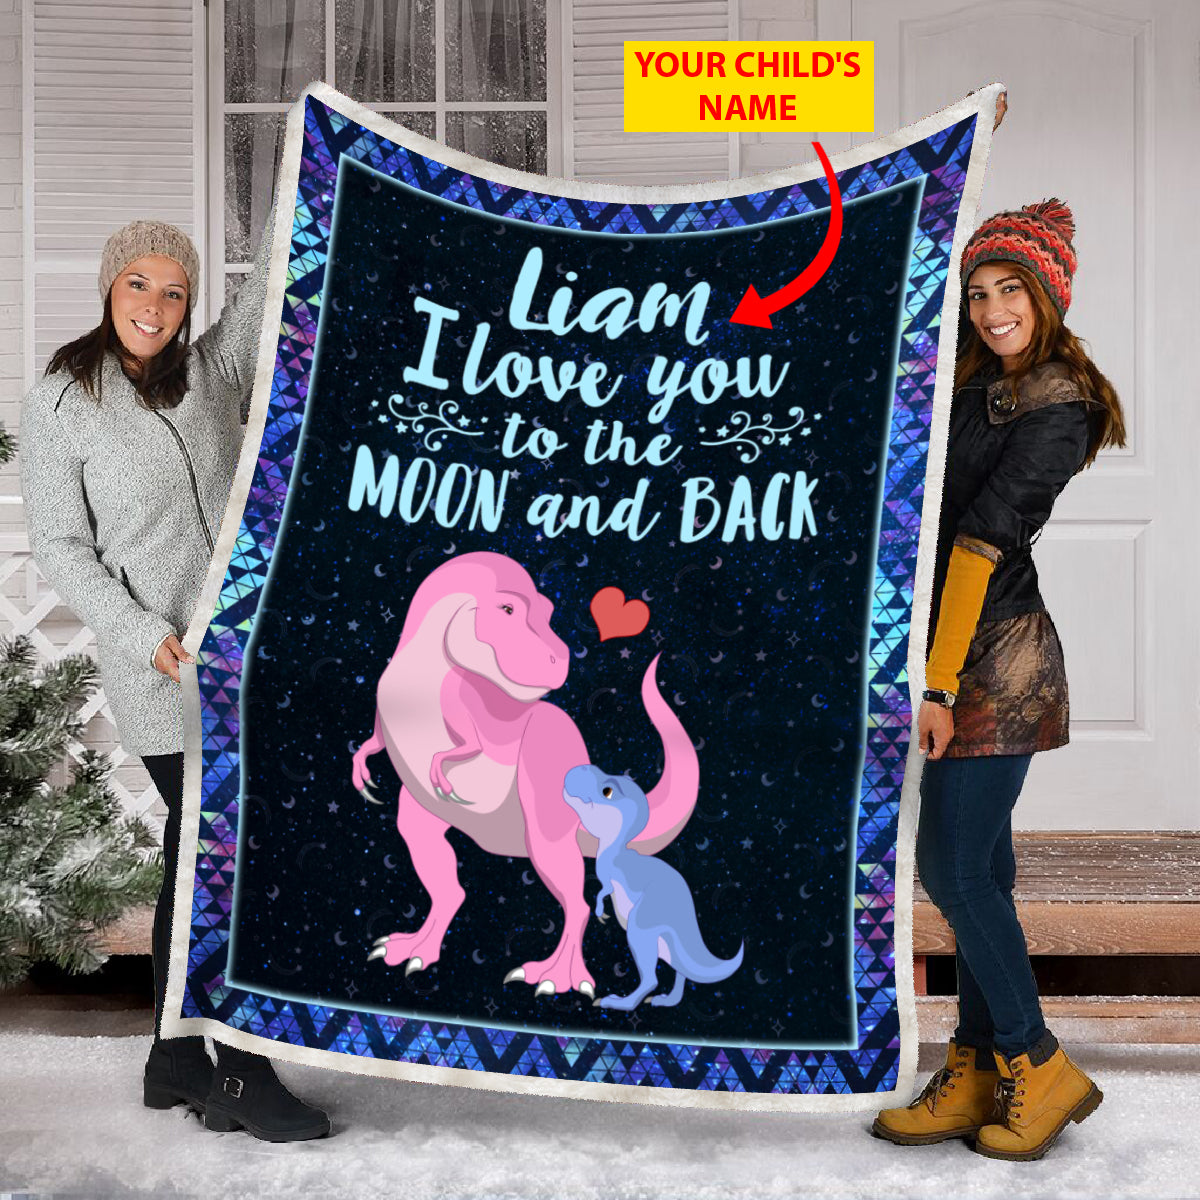 Dinosaur - I Love You - Custom Boy Name Blanket